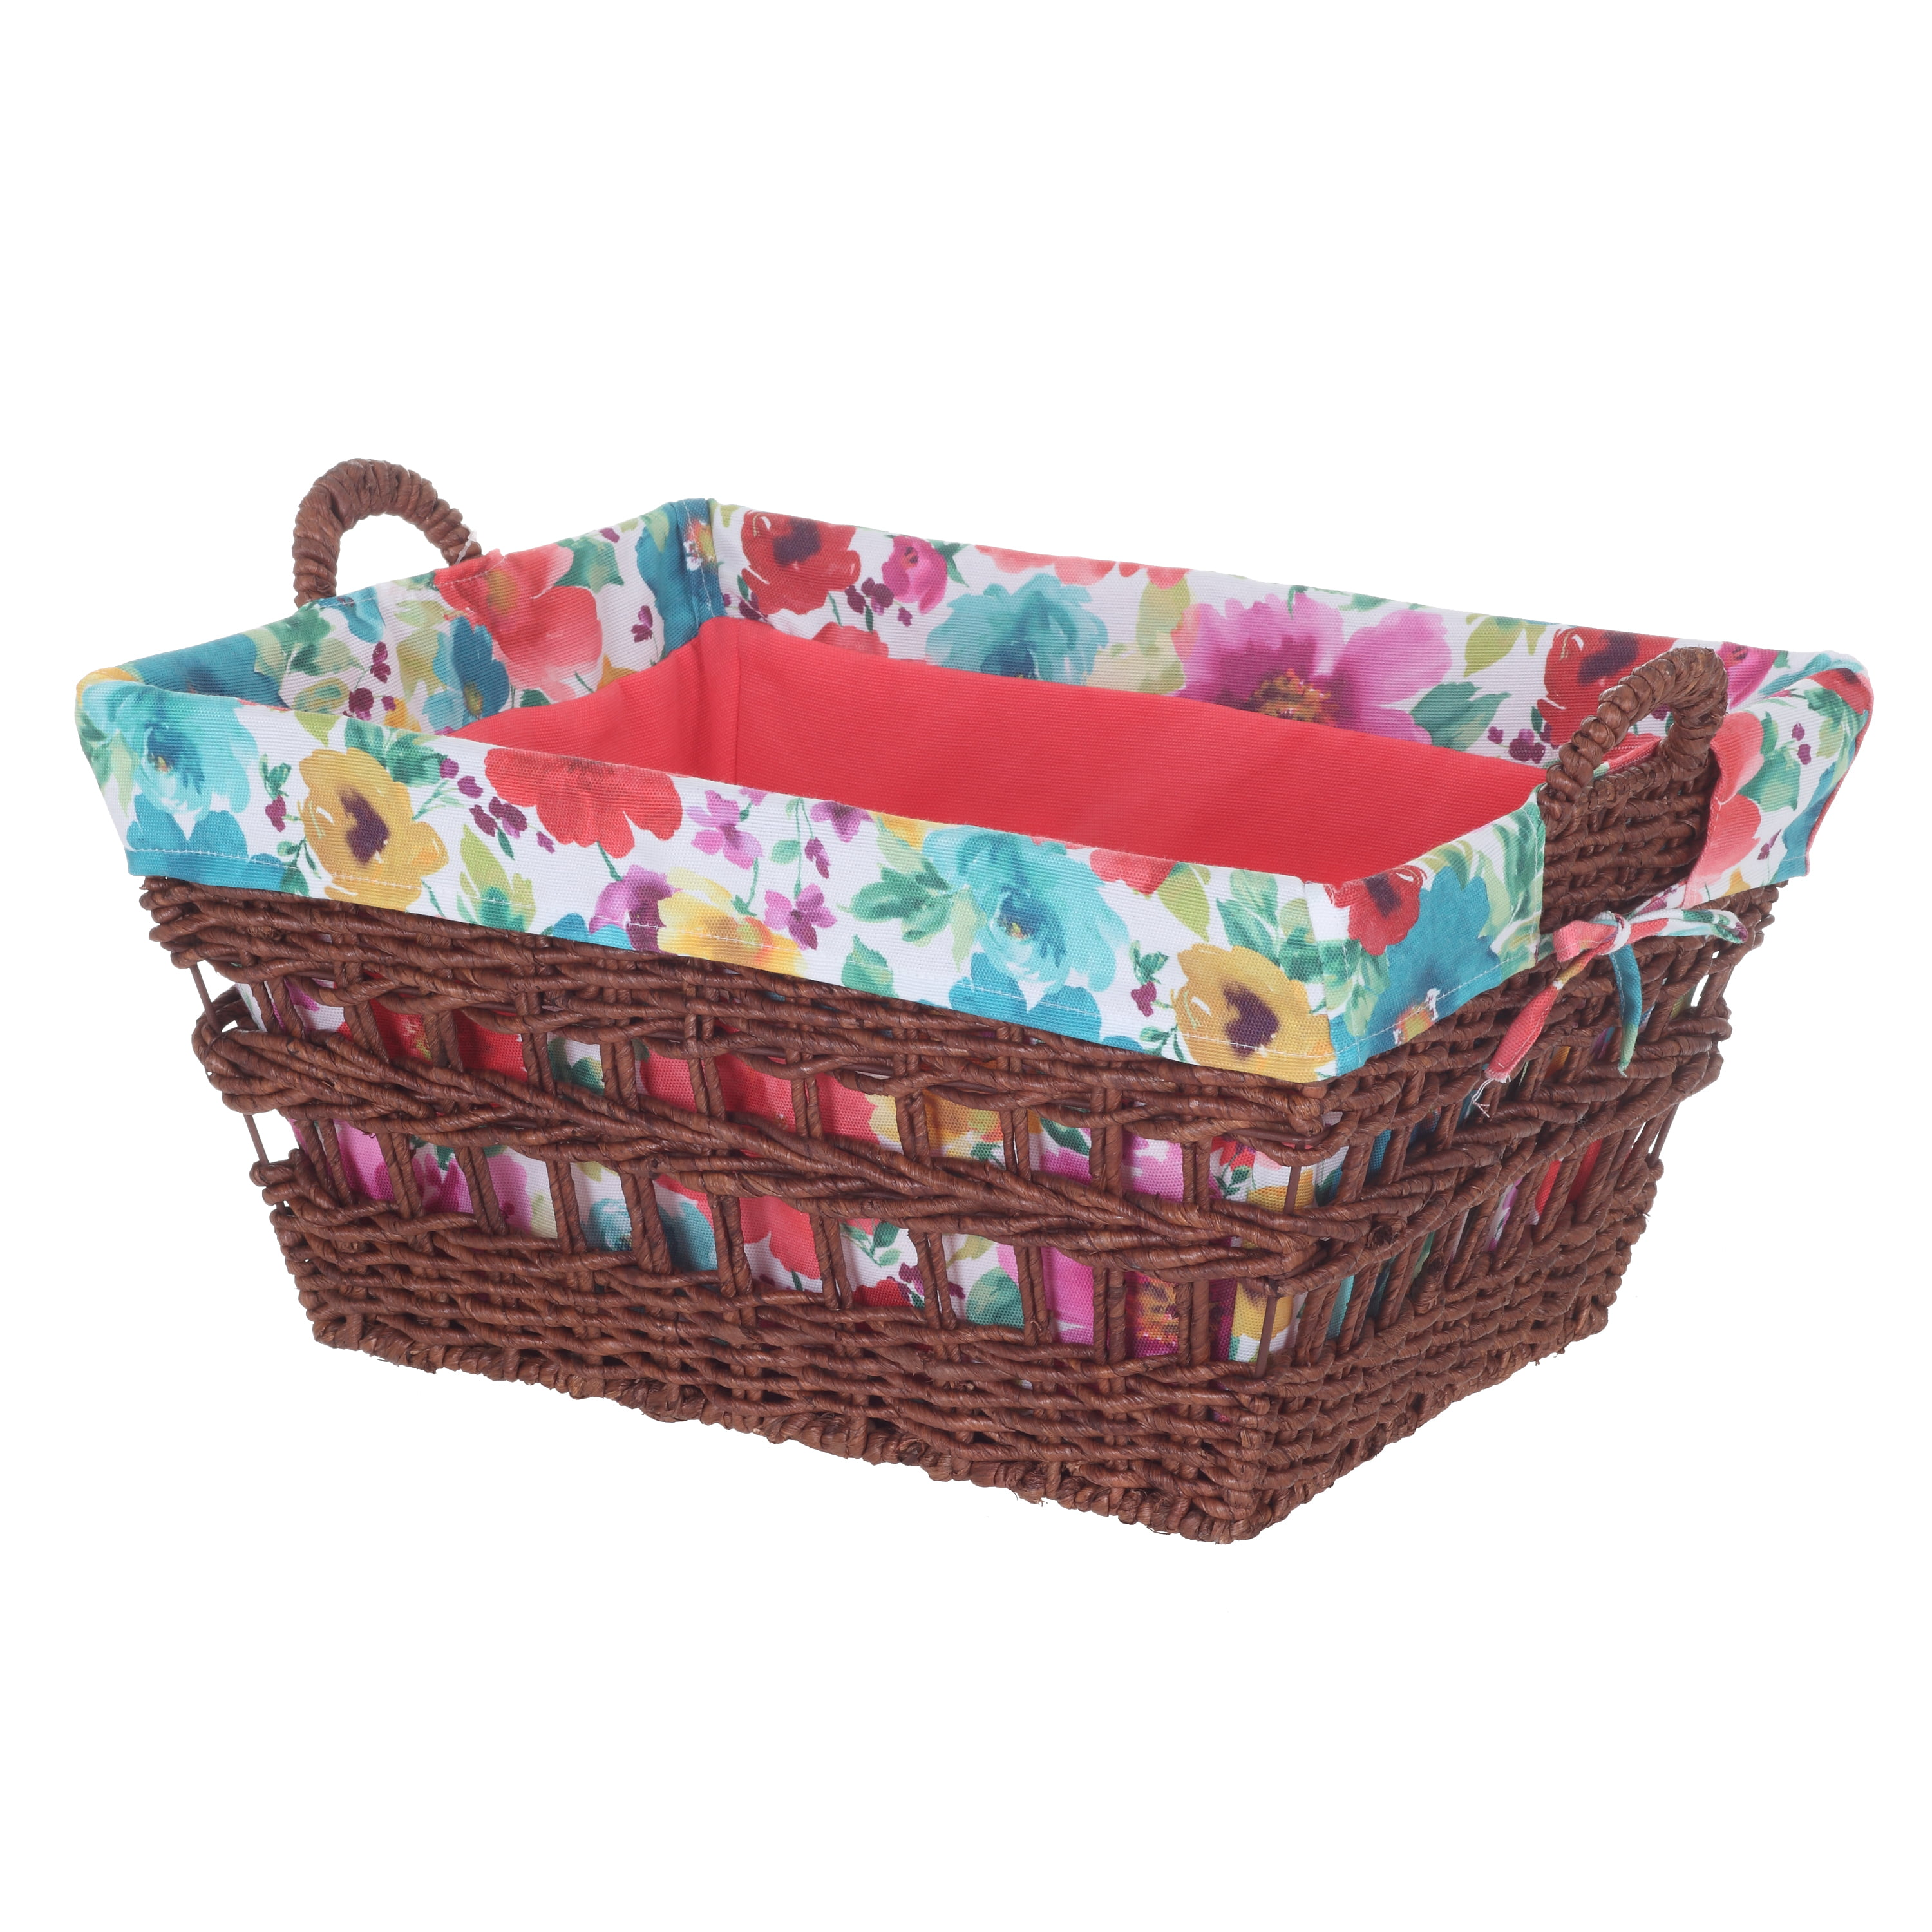 Pioneer Woman Rectangle Maize Basket - Breezy Blossom Floral